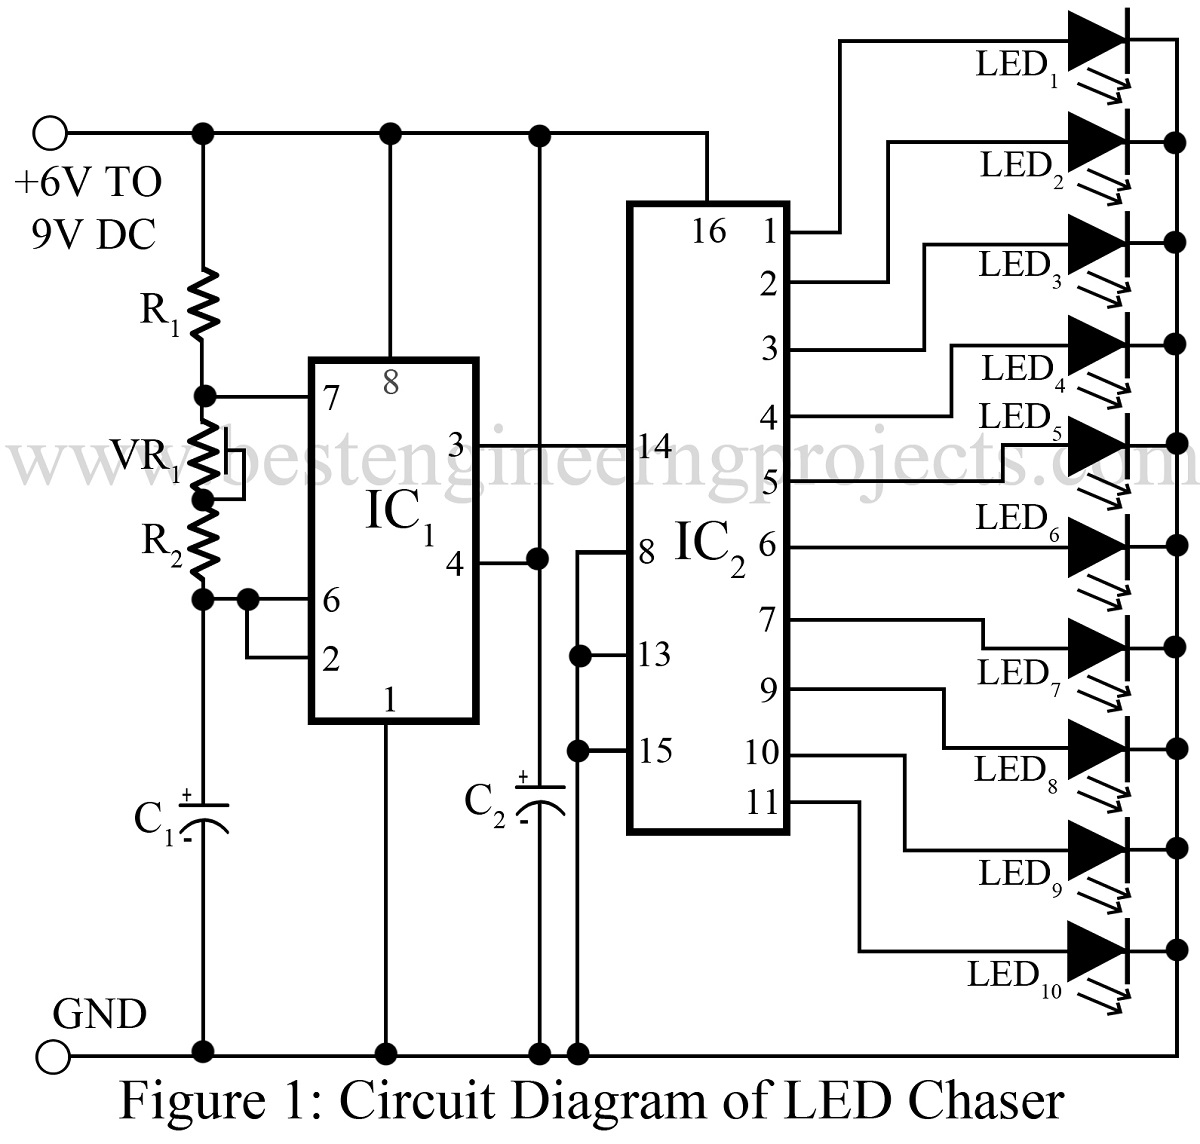 circuit diagram of LED chaser